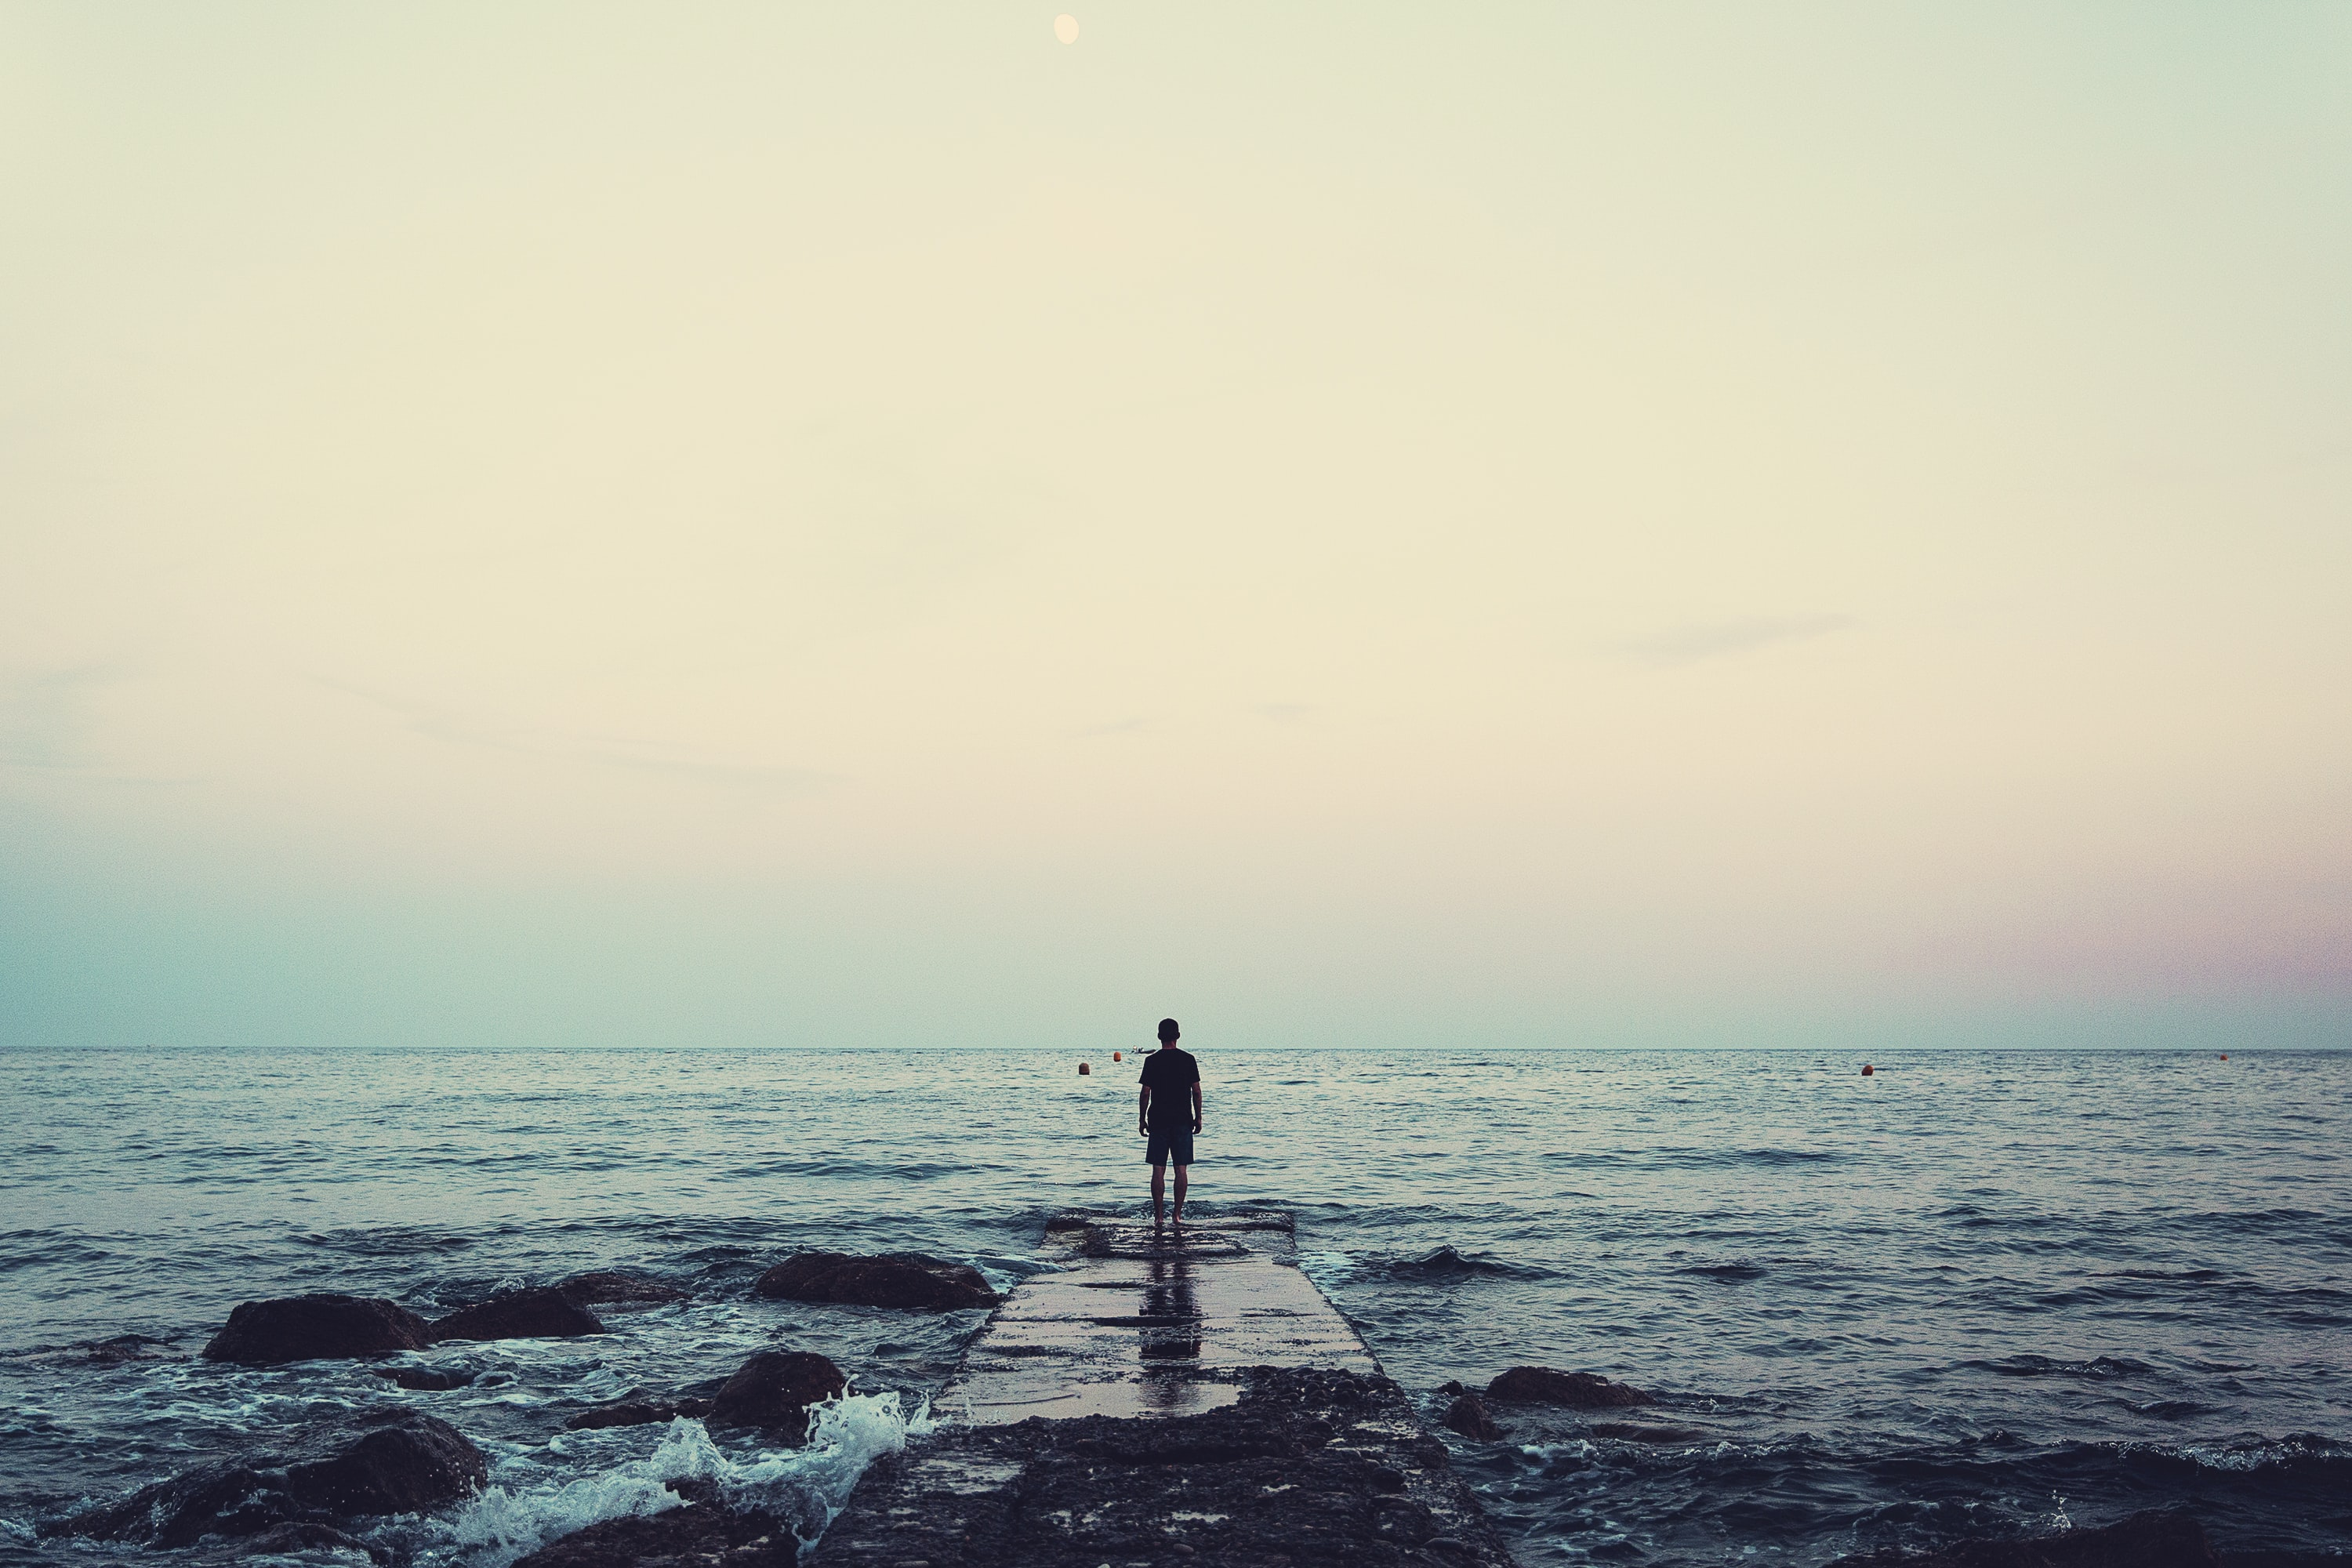 silhouette of person standing on sea dock under cloudy sky